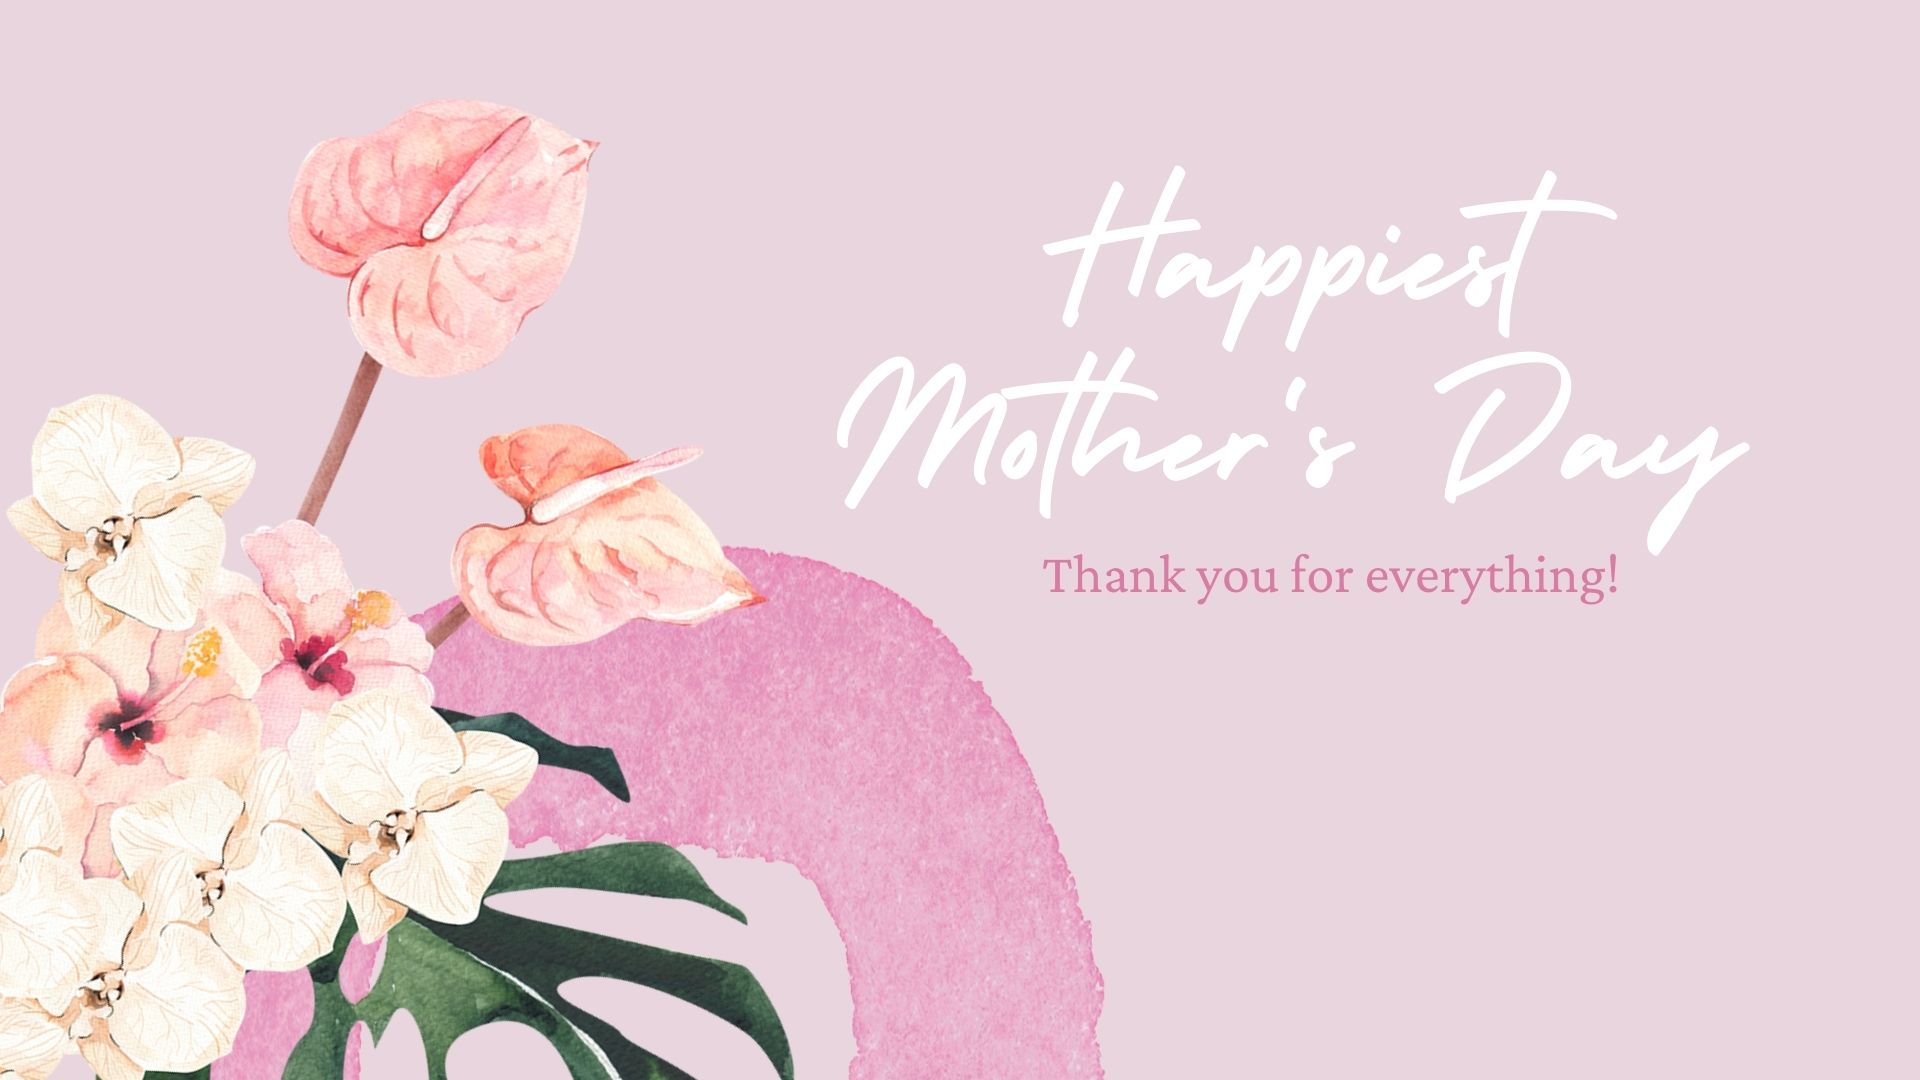 Mother's Day 2021 image